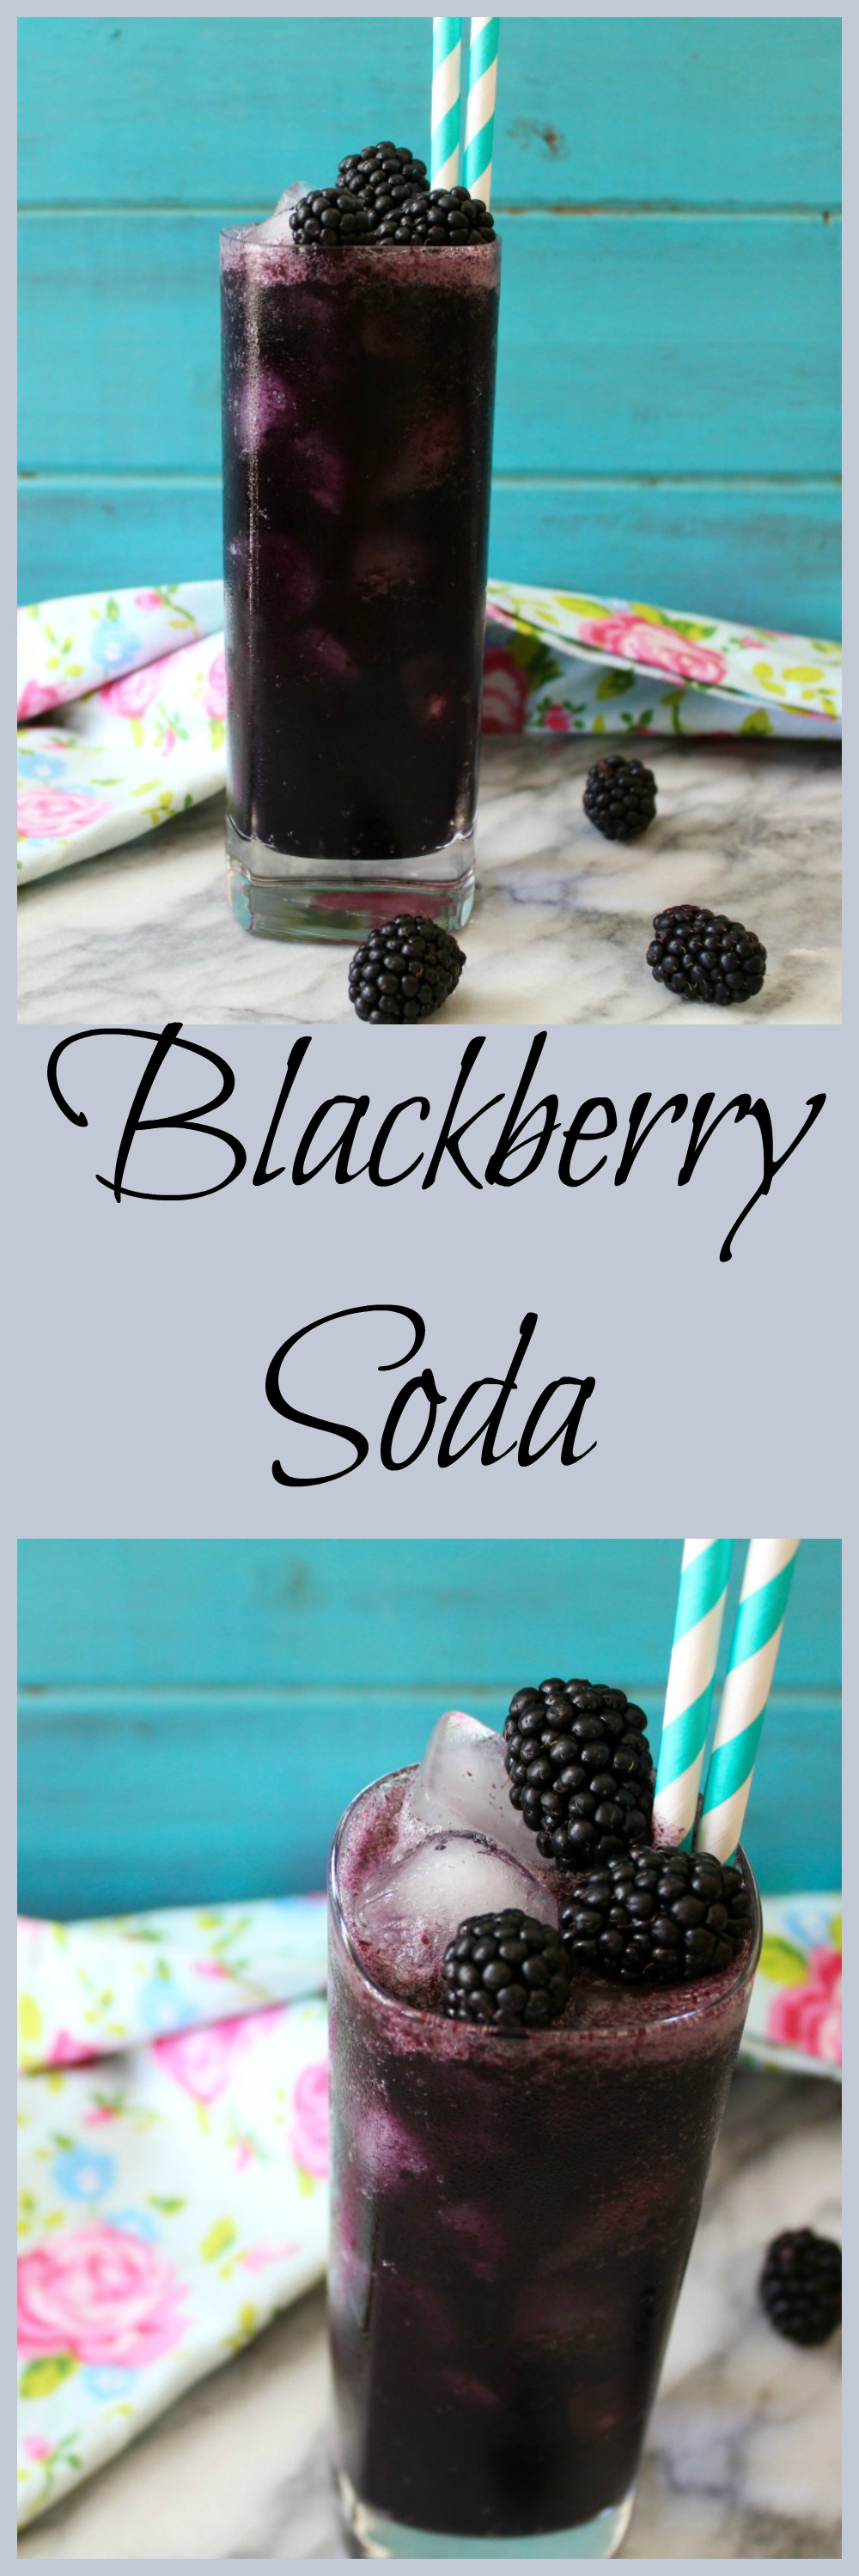 Blackberry Soda